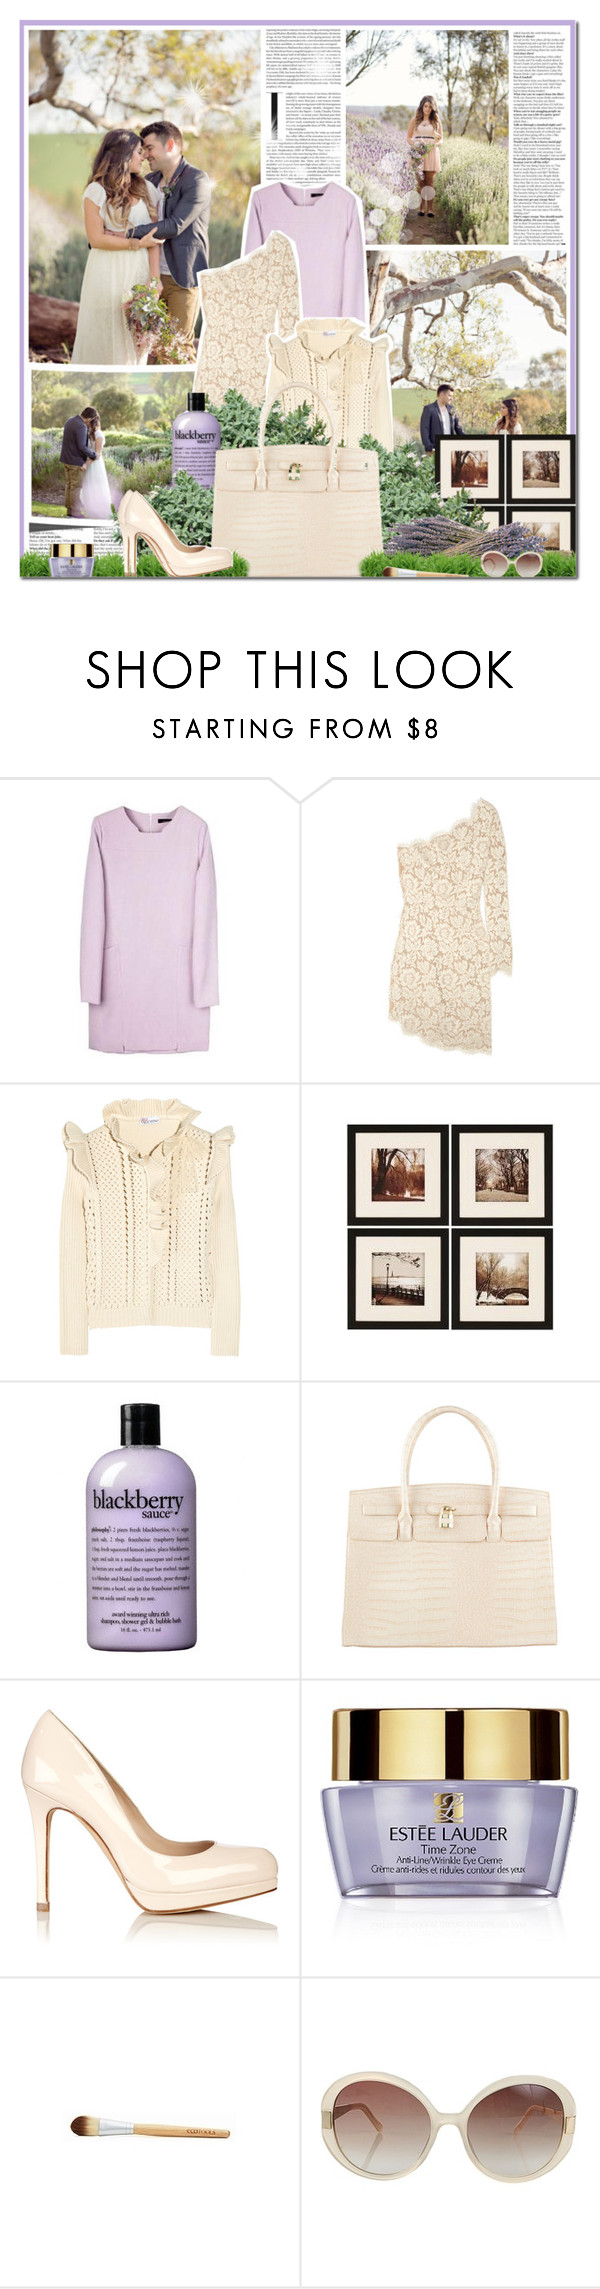 """""""(Everything I Do) I Do It For You"""" by lilylo ❤ liked on Polyvore featuring STELLA McCARTNEY, RED Valentino, WALL, philosophy, ALDO, L.K.Bennett, Estée Lauder and Oscar de la Renta"""